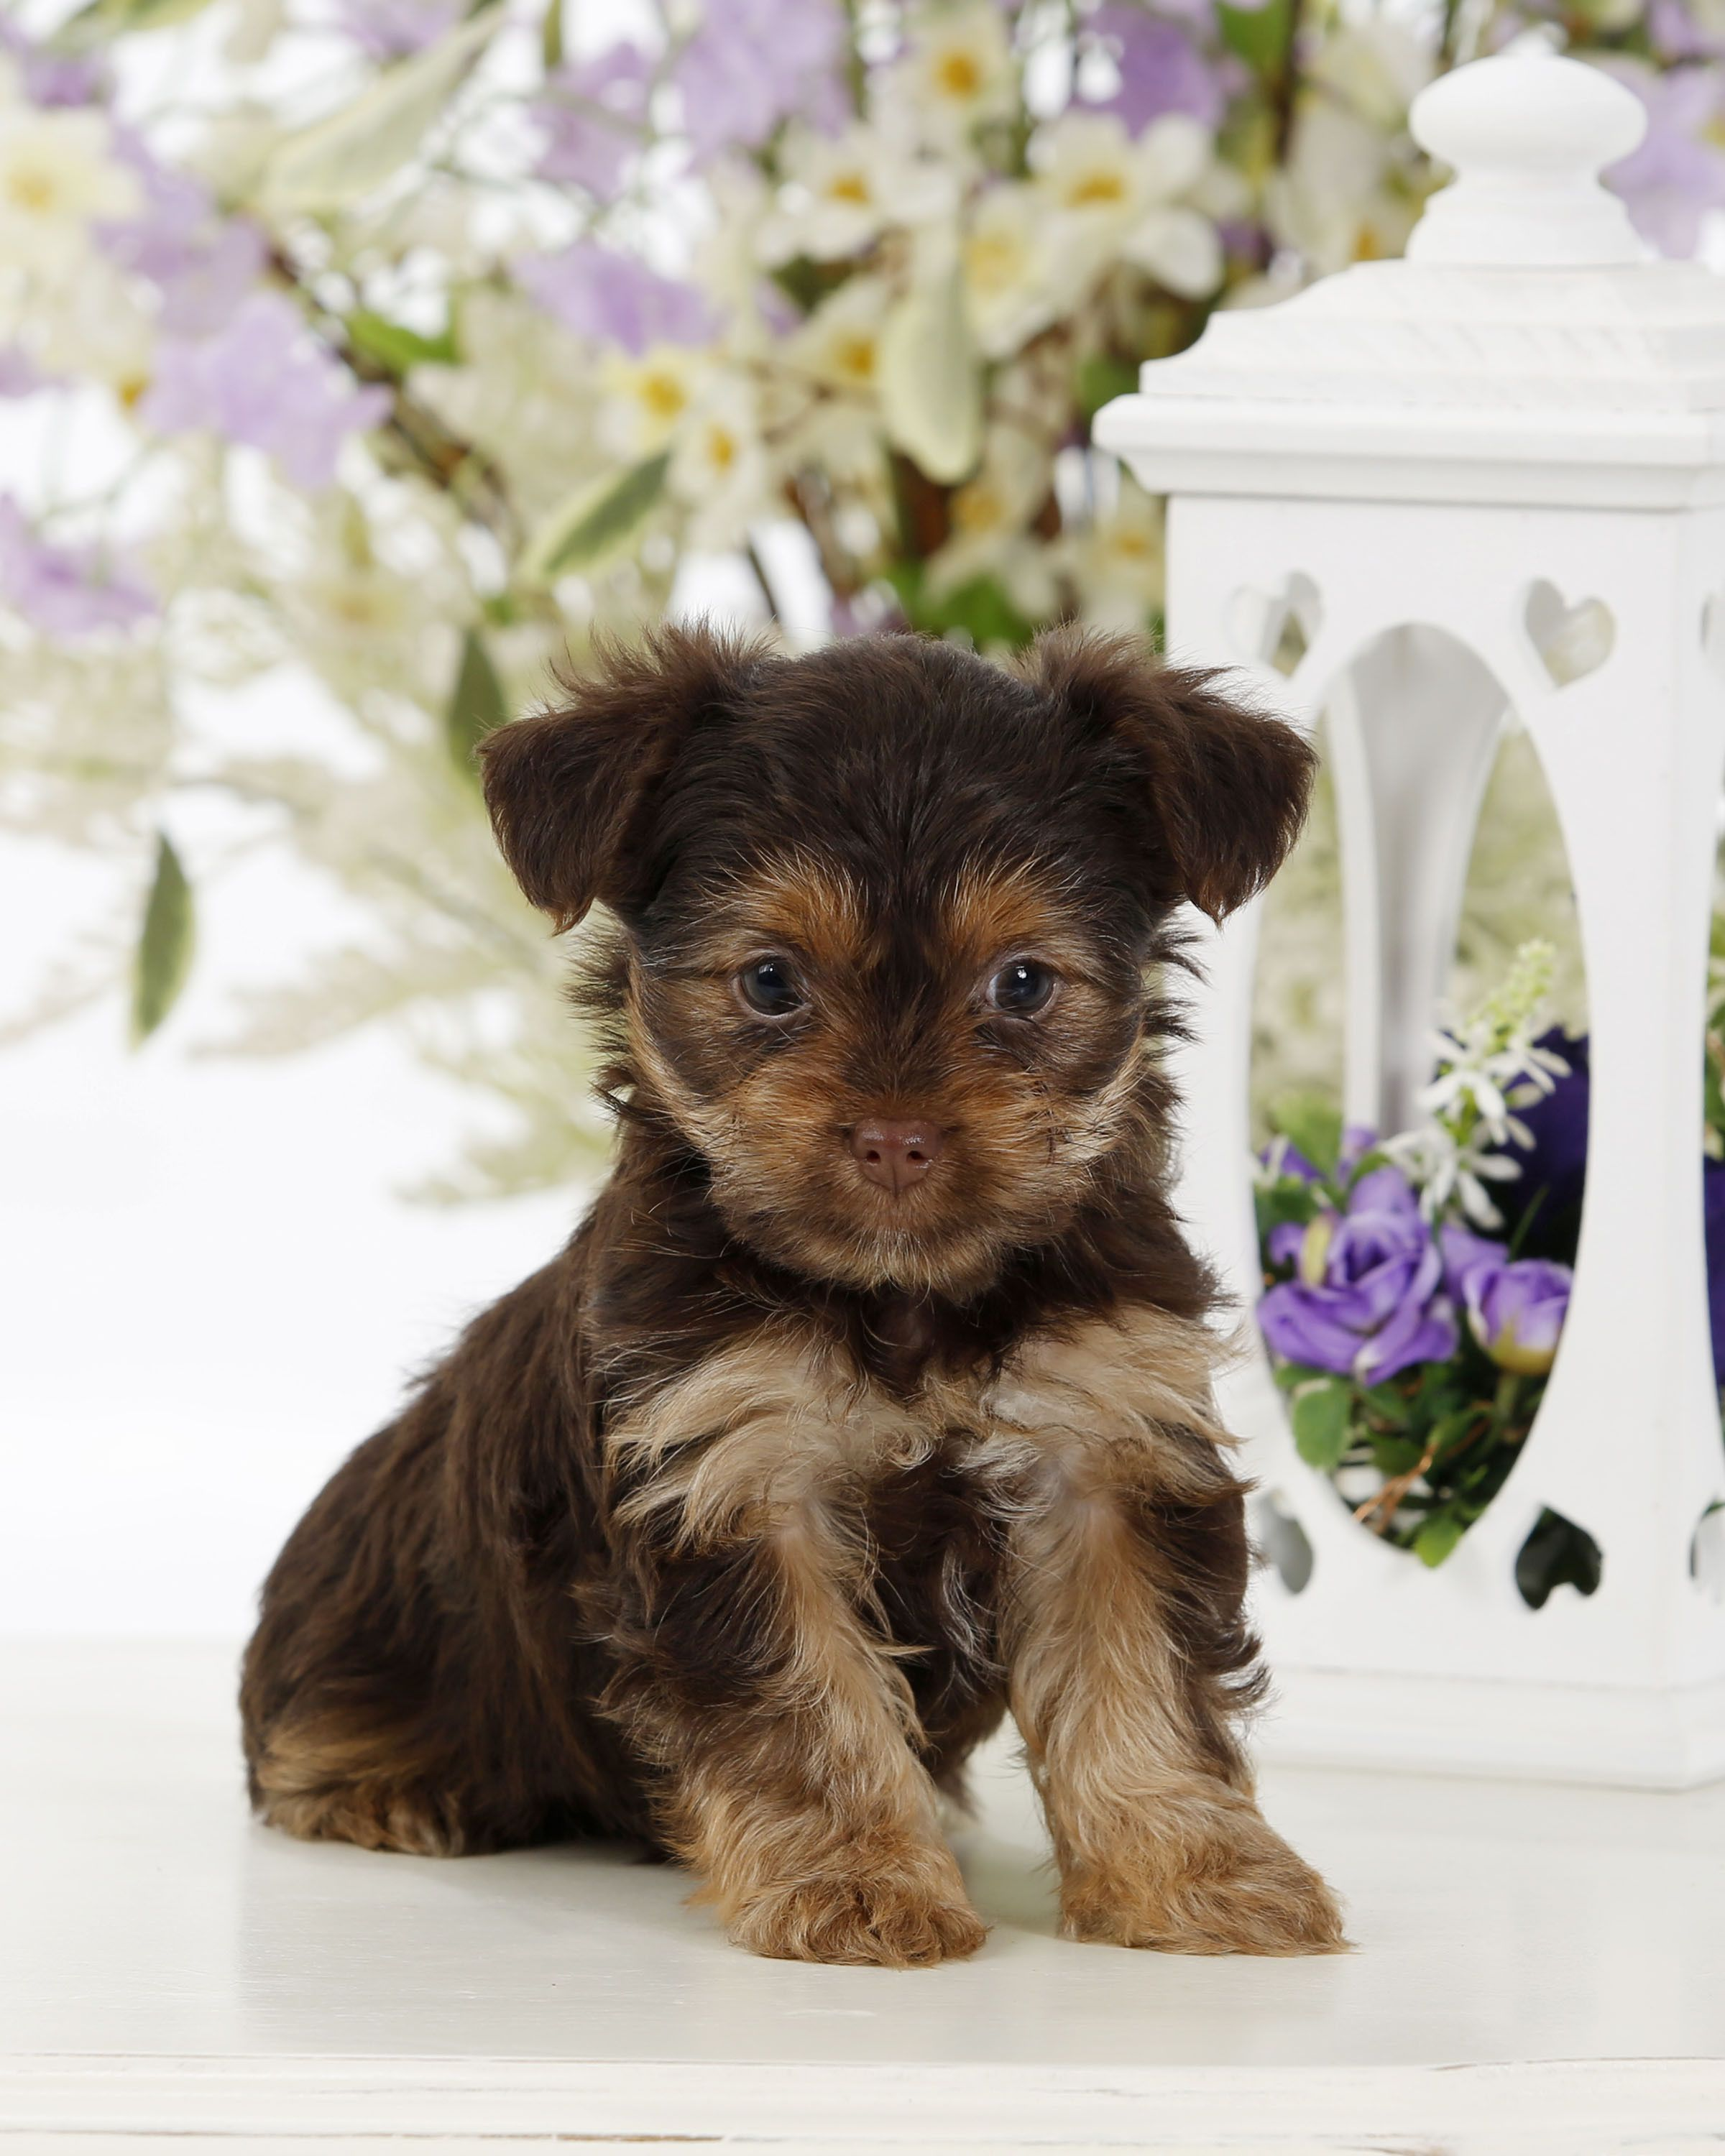 Pin by Buckeye Puppies on Yorkshire Terrier Mix Puppies